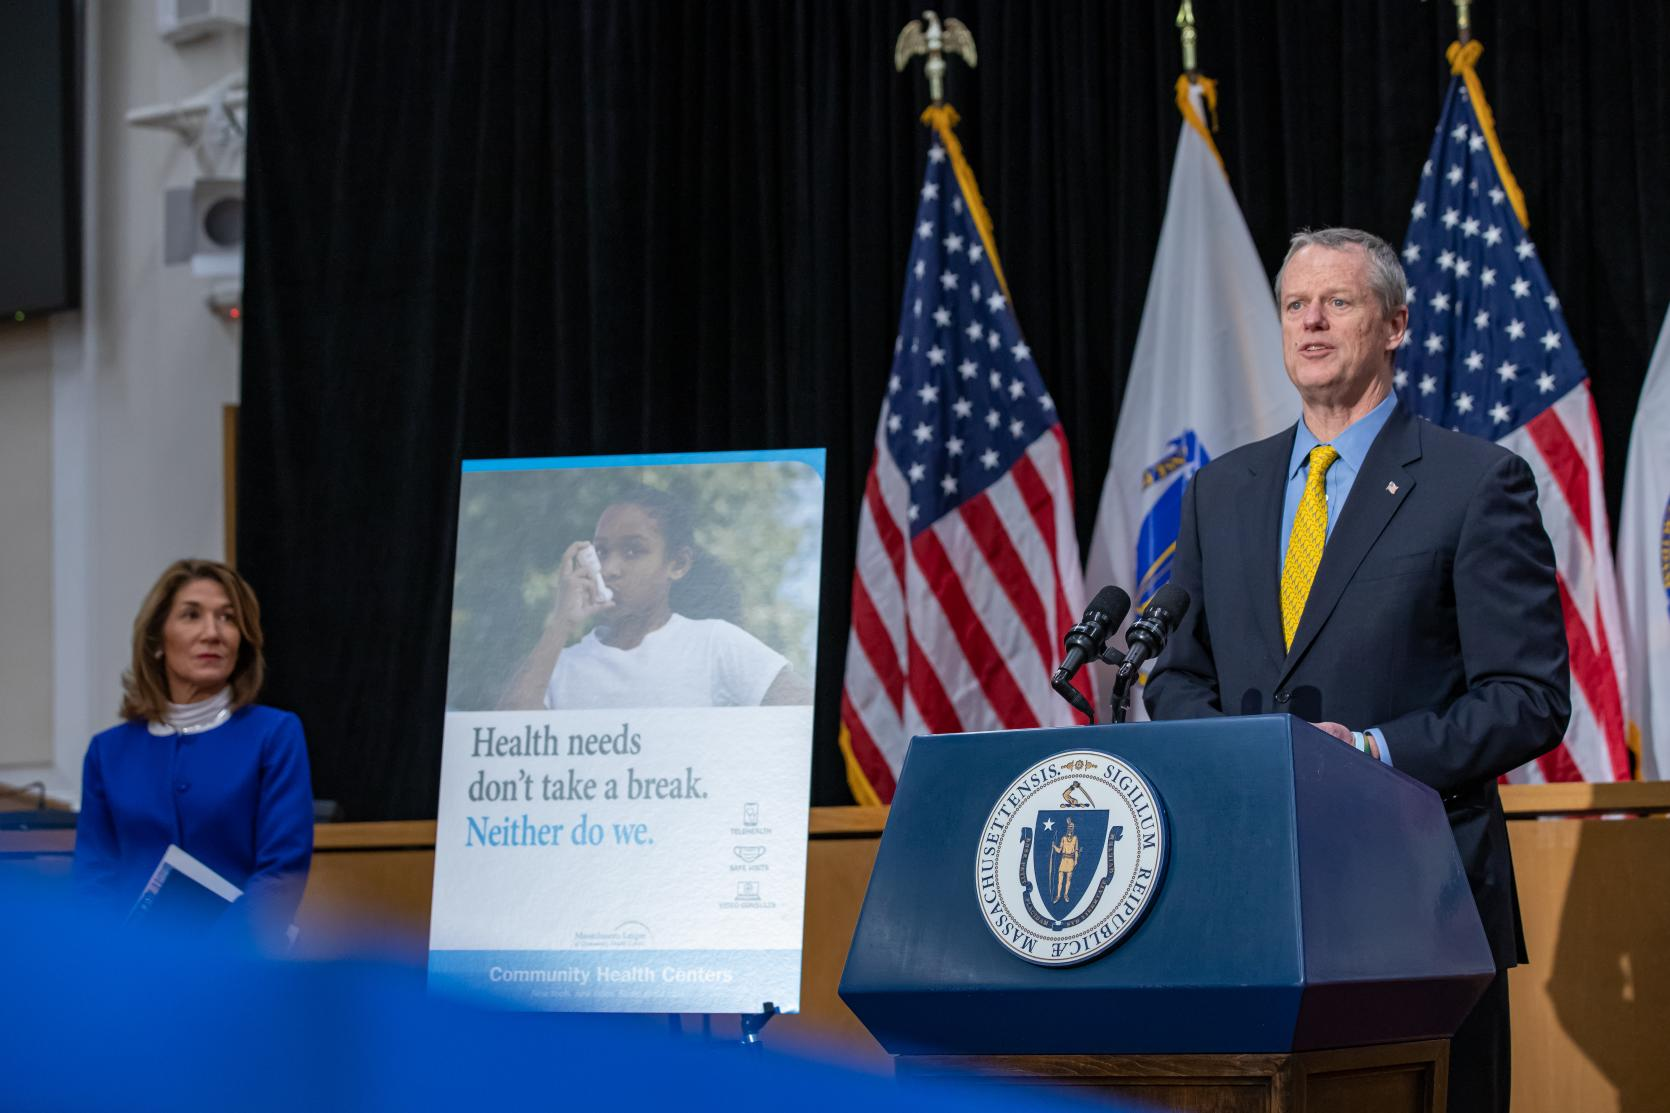 Baker-Polito Administration, Mass League of Community Health Centers to Launch Public Awareness Campaign